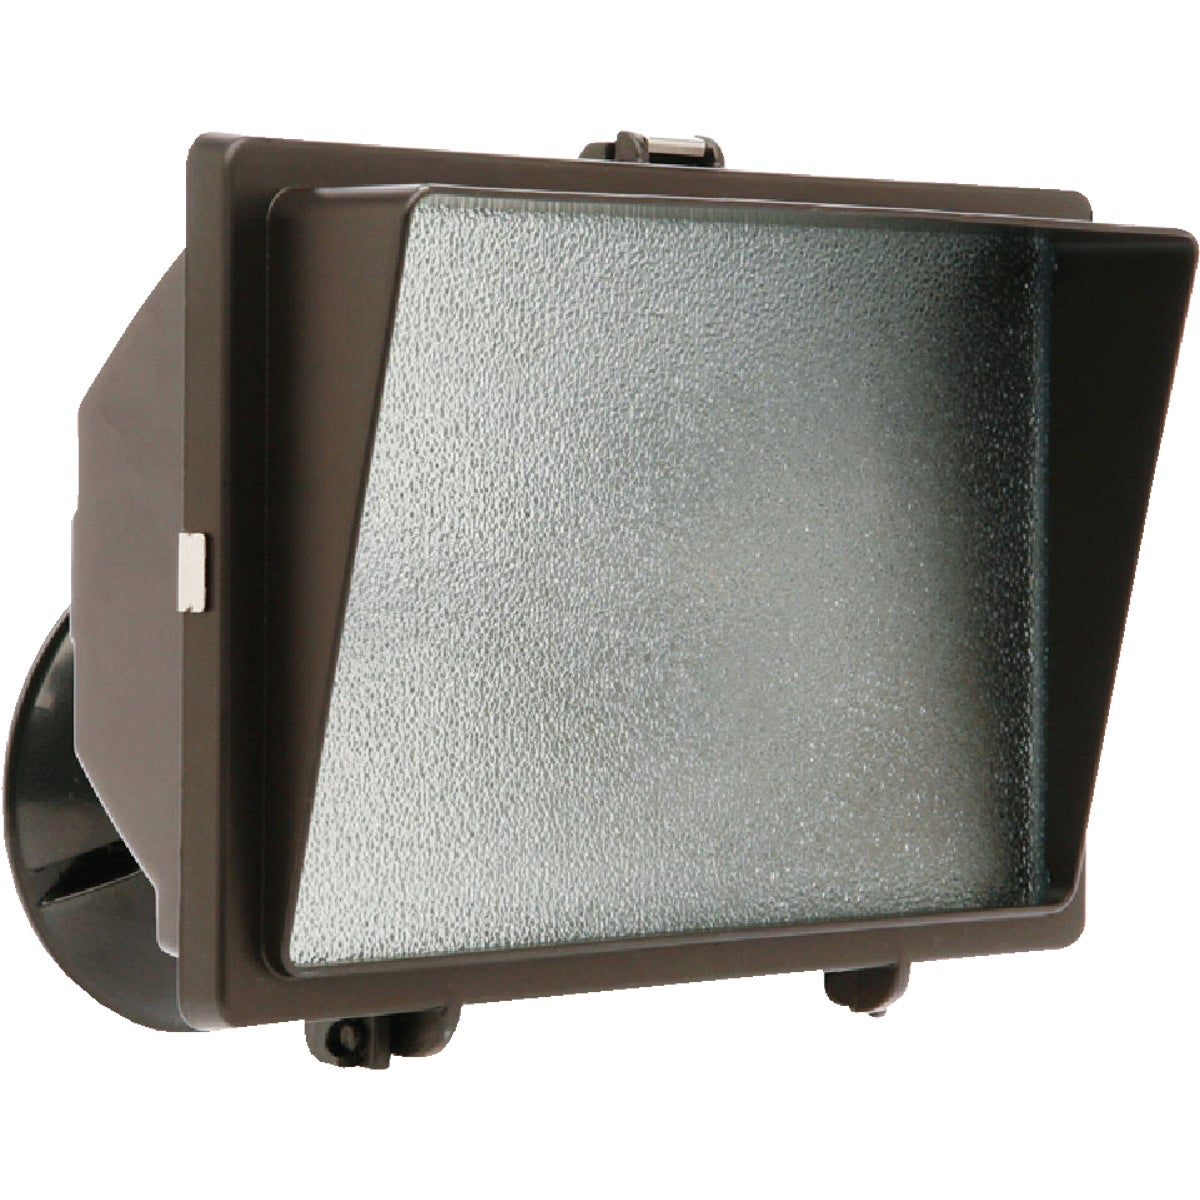 500W QTZ FIXTURE - QL-500-WL by Cooper Lighting